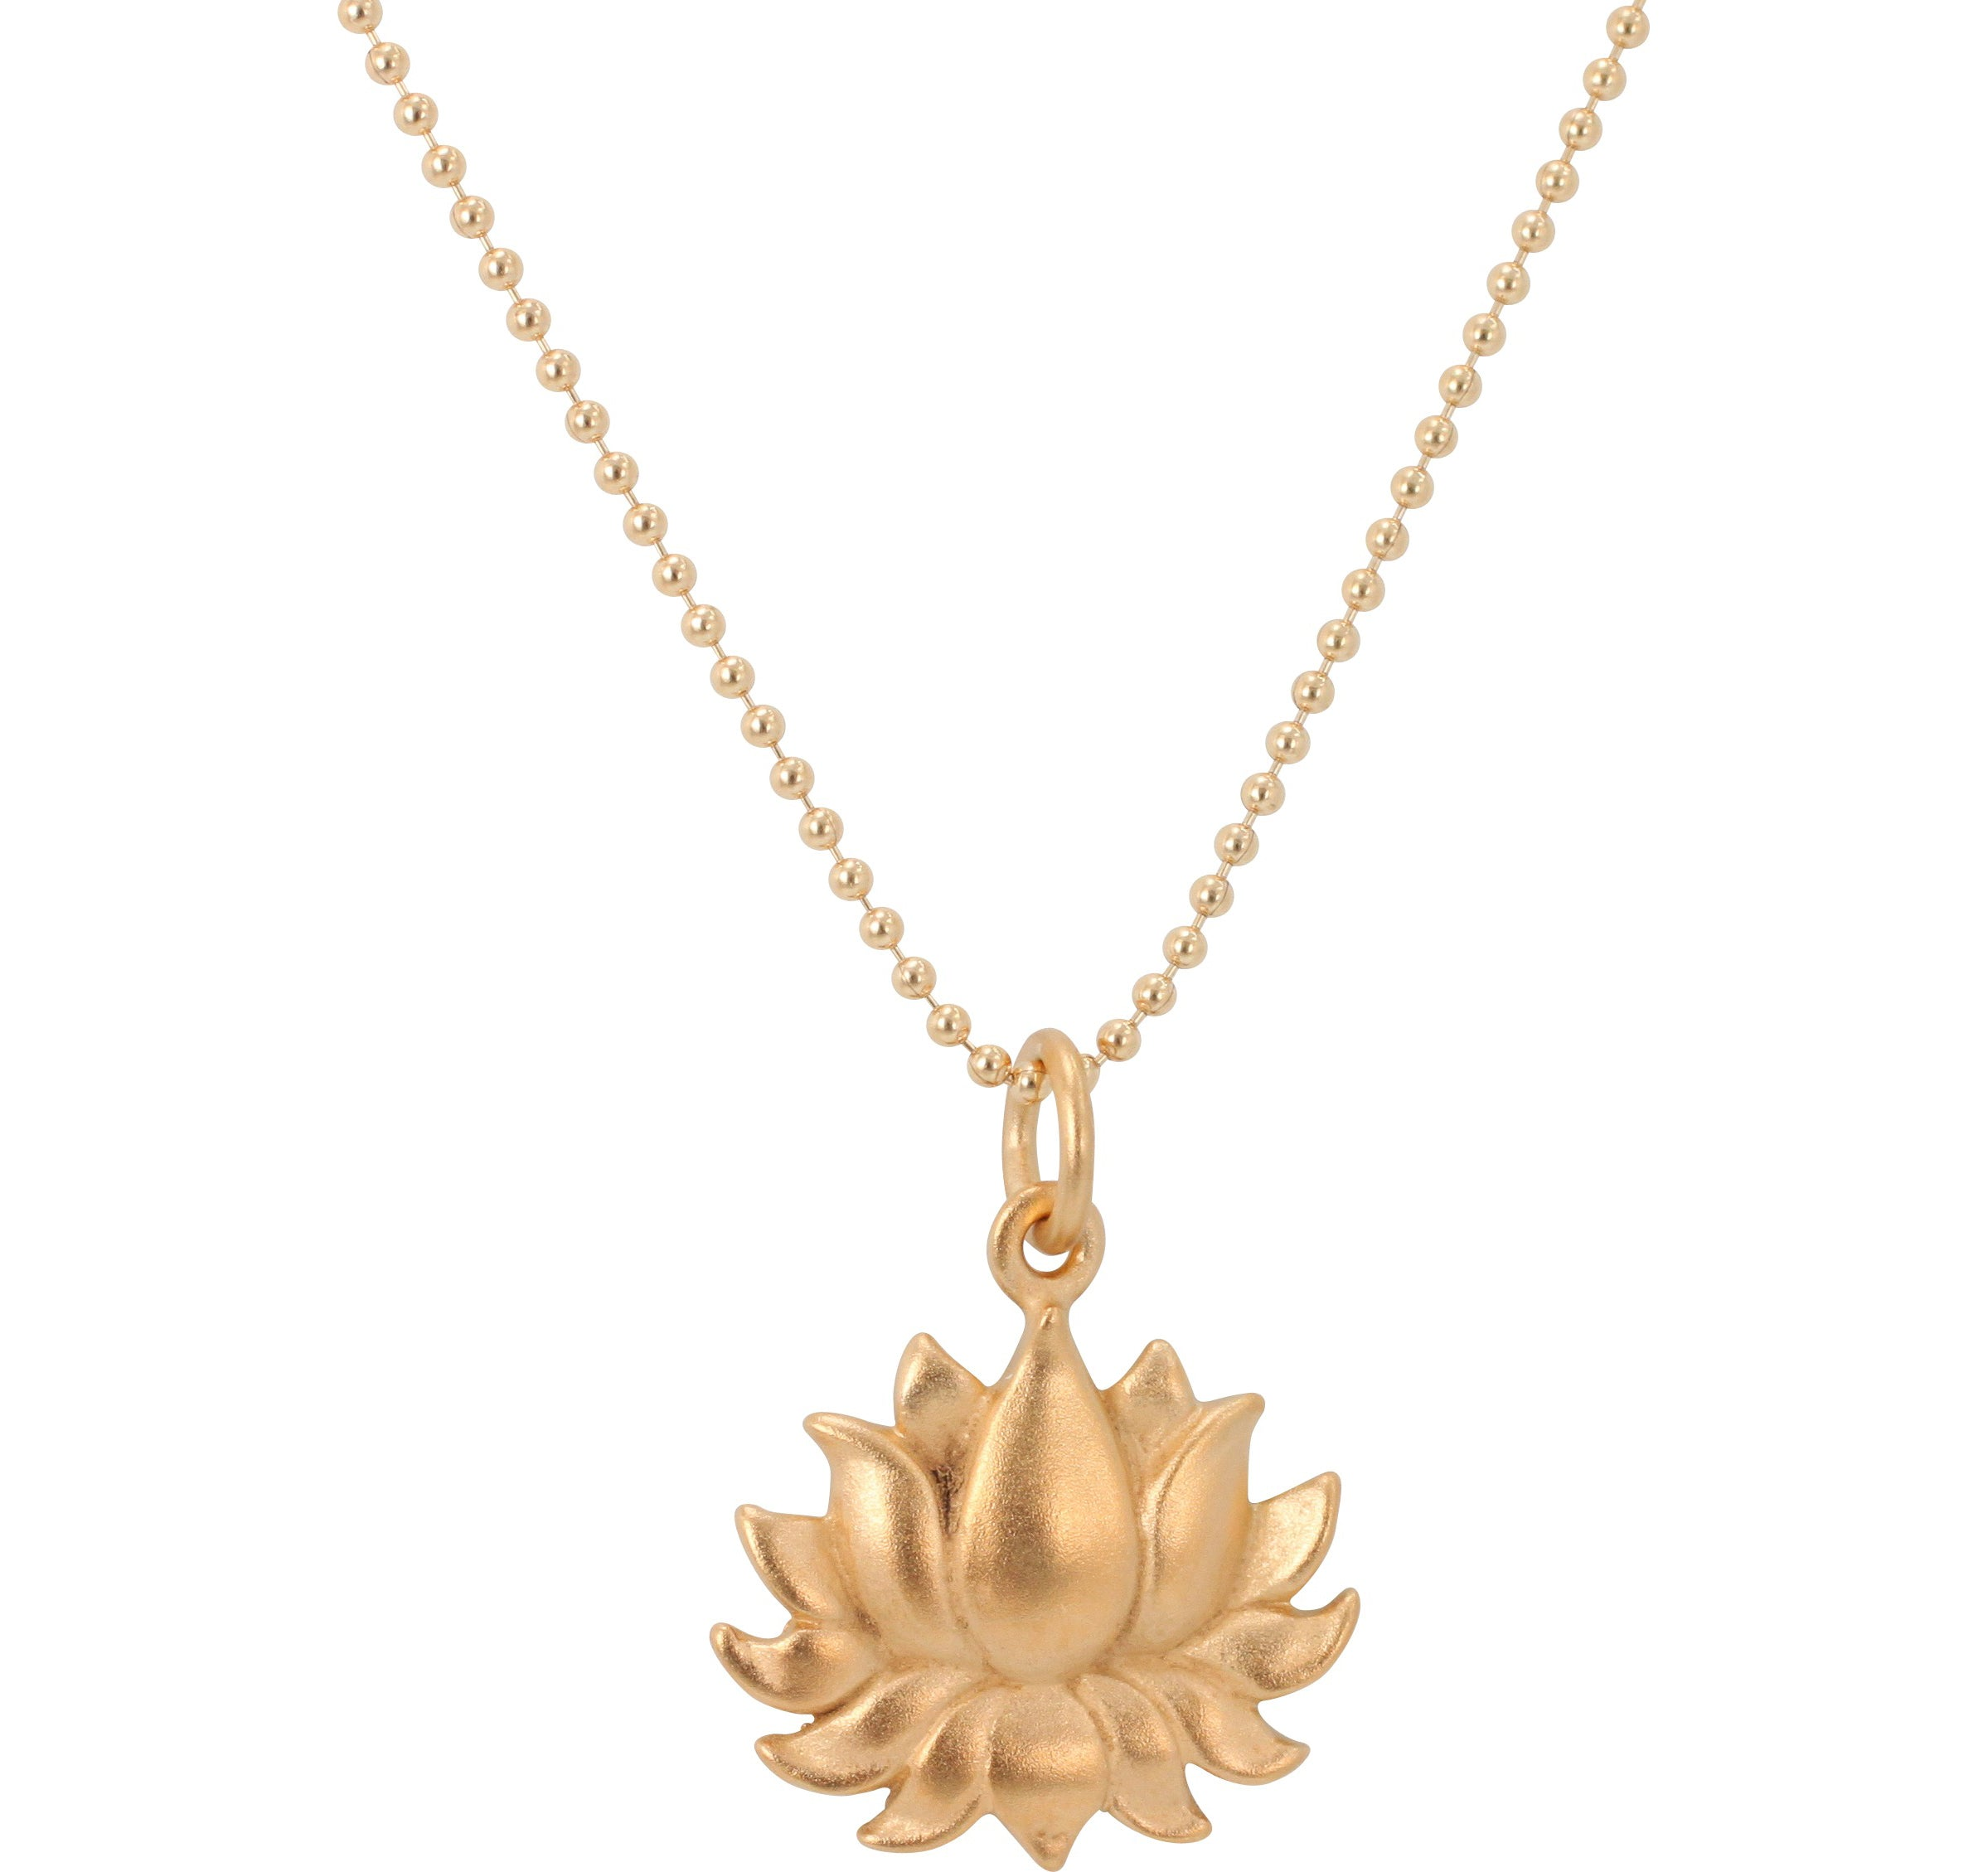 delicatenecklaces northern lights silver gold necklace necklaces delicate flower sterling lotus